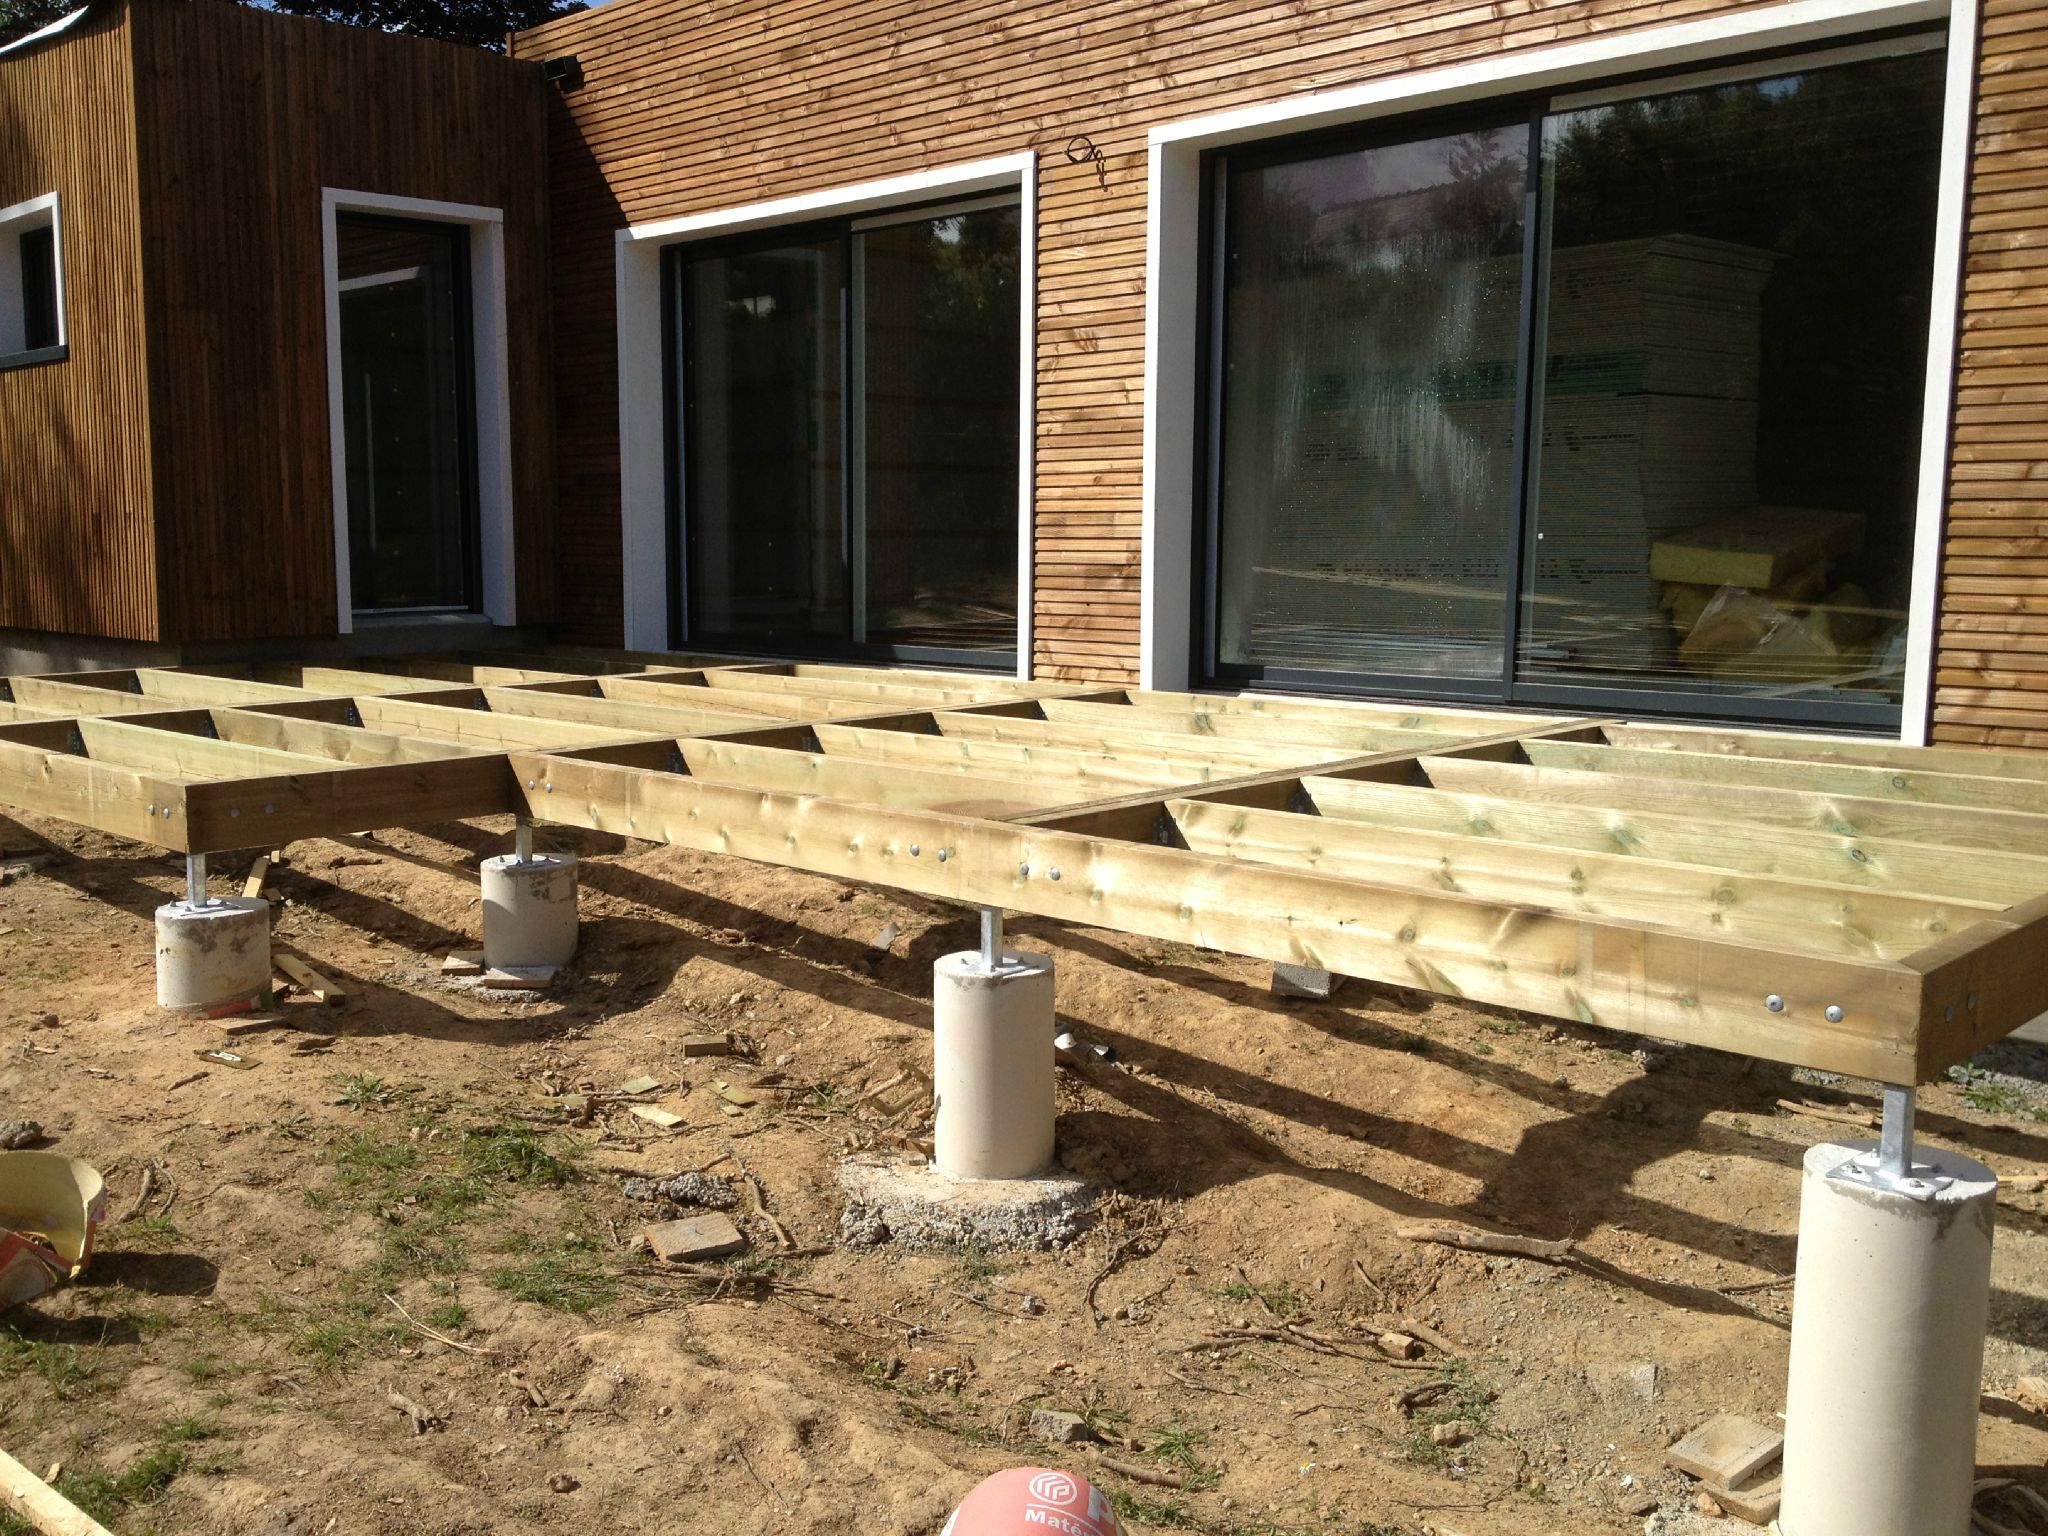 Maison bois sur plots conception de structure de terrasse for Terrasse bois sur plot